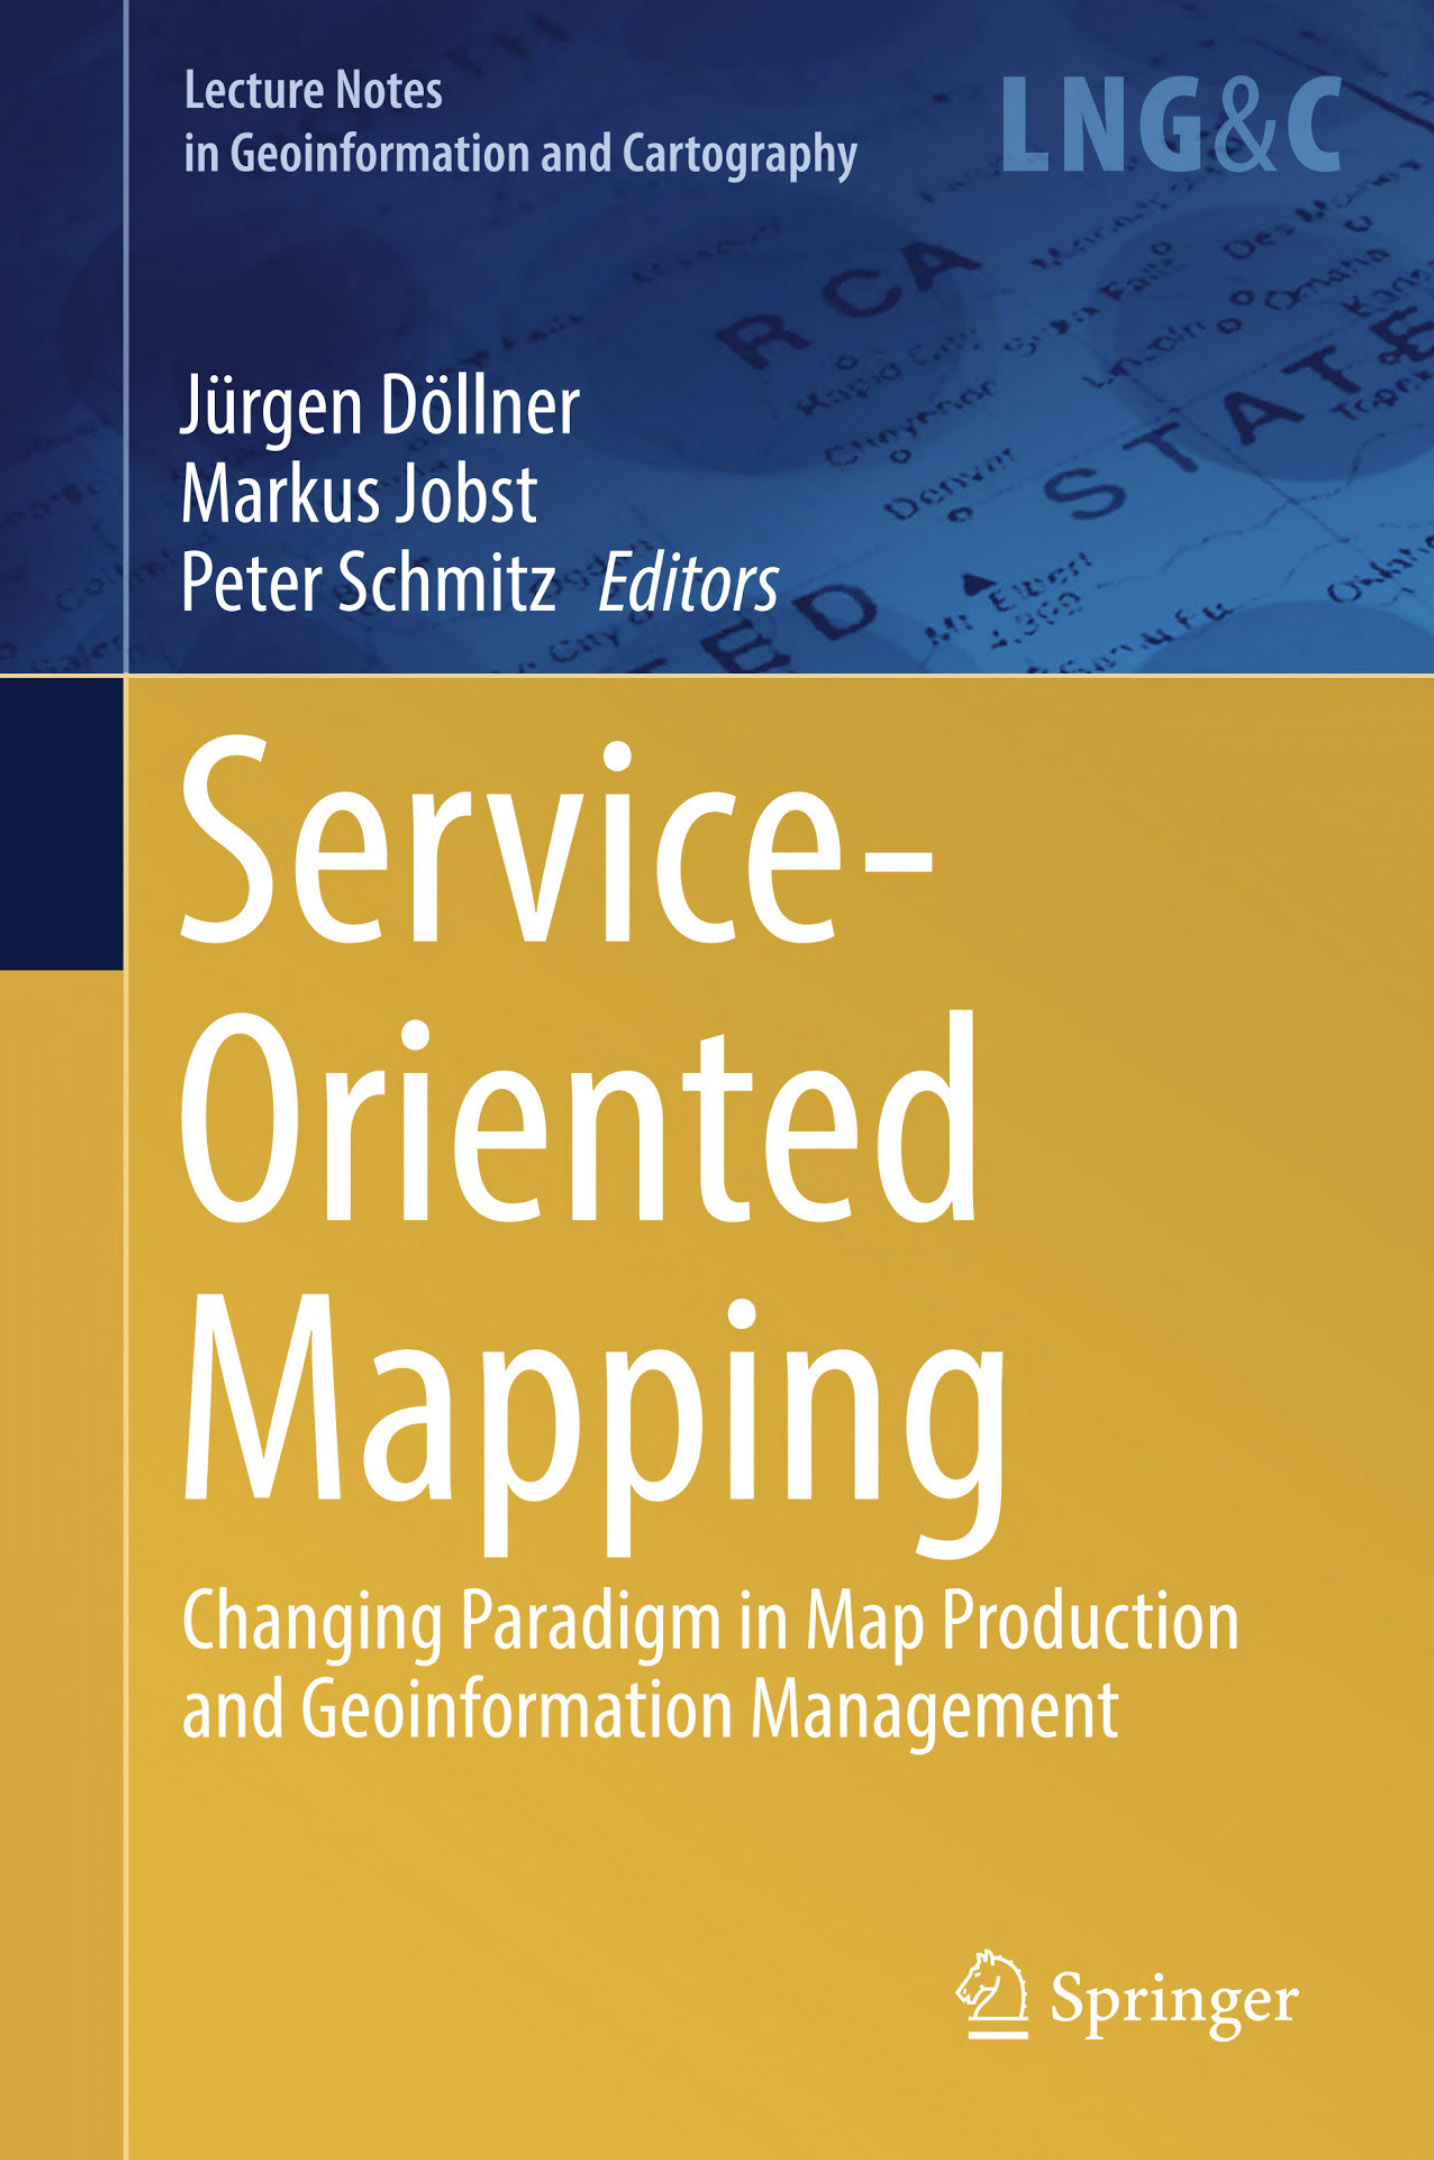 Service-Oriented Mapping: Changing Paradigm in Map Production and Geoinformation Management